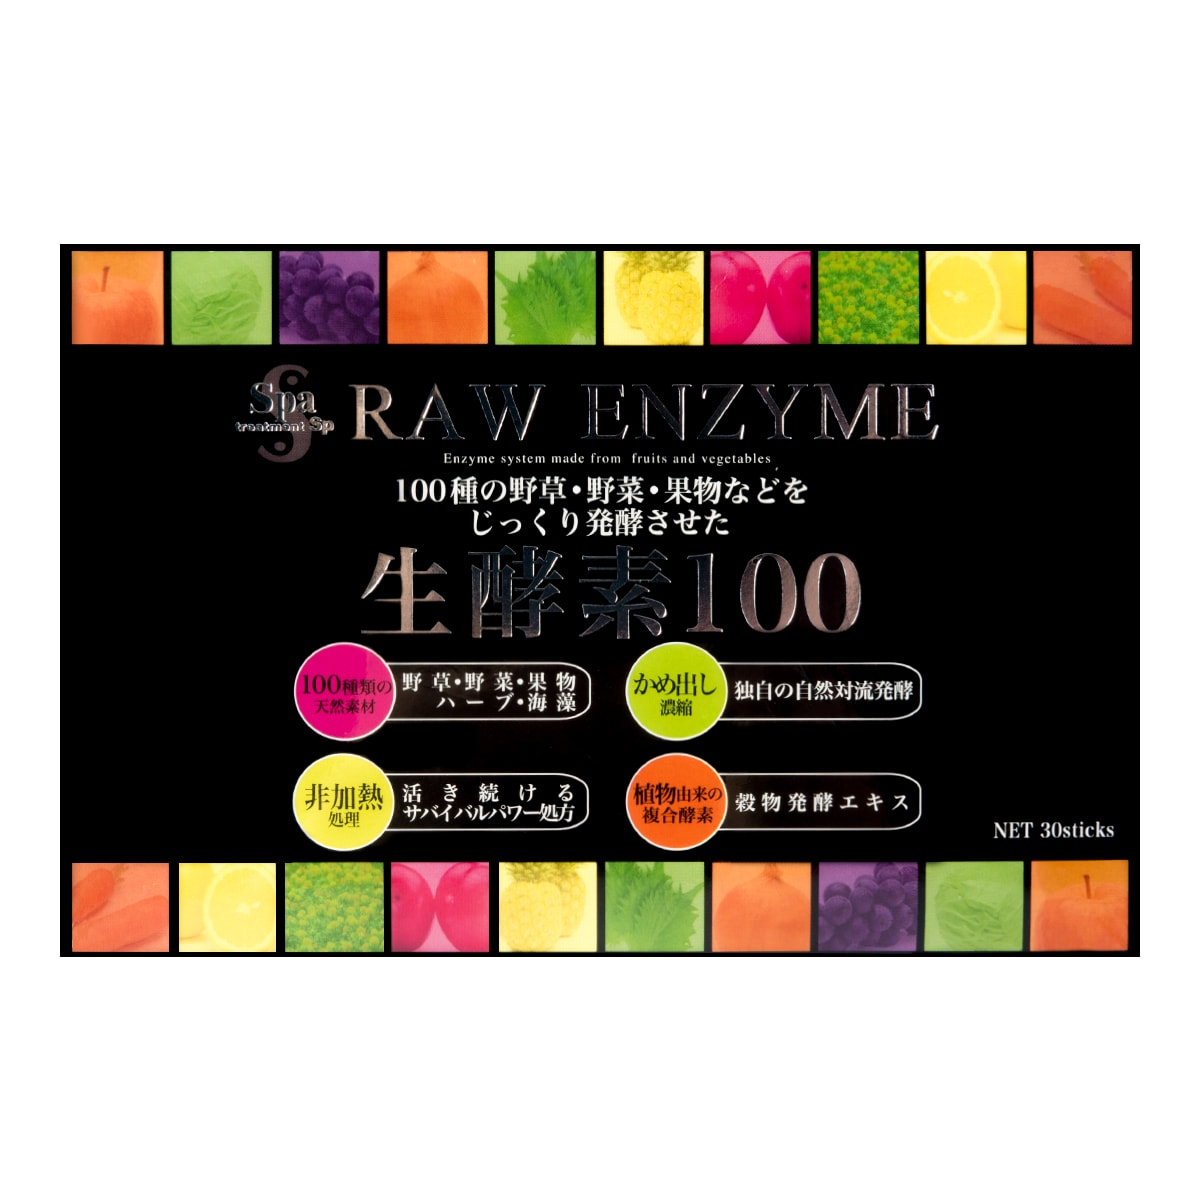 【清仓】日本SPA TREATMEANT RAW ENZYME 生酵素100 30包入 90g